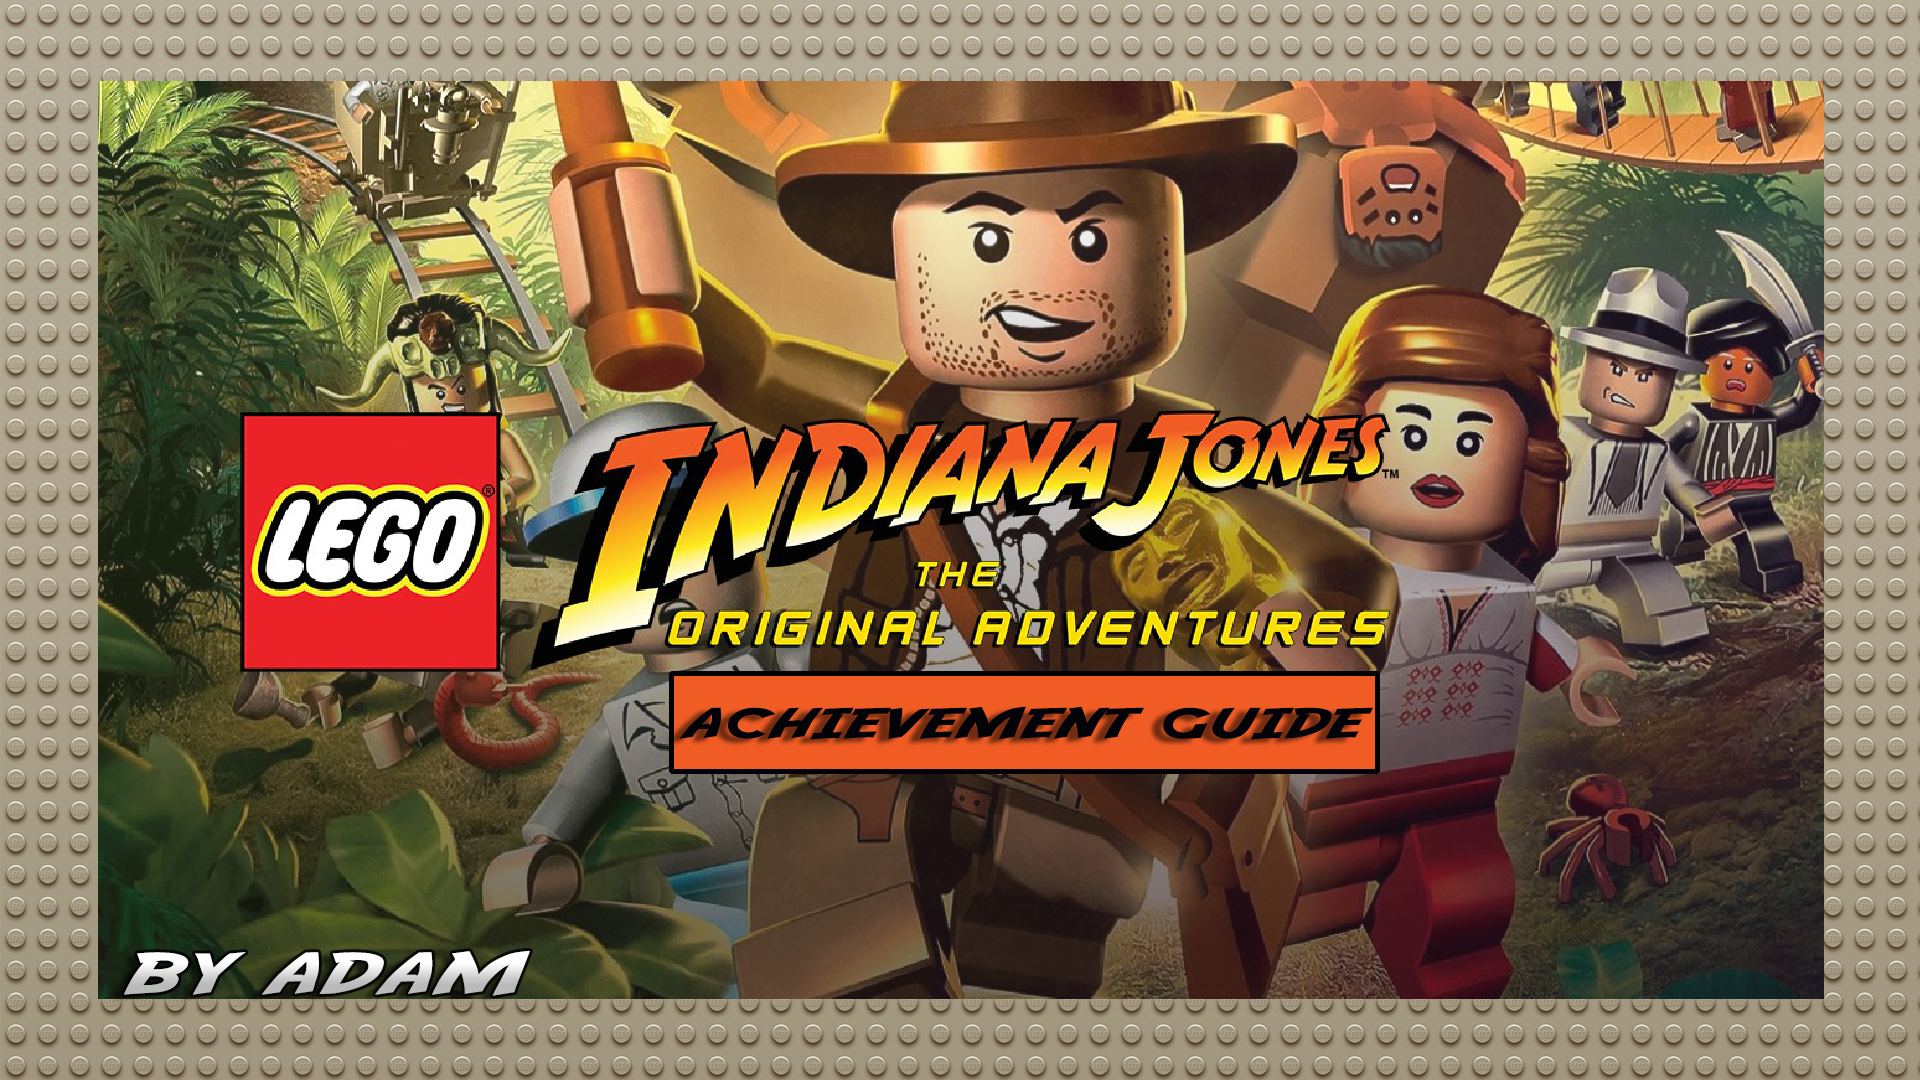 LEGO Indiana Jones The Original Adventures Achievement Guide